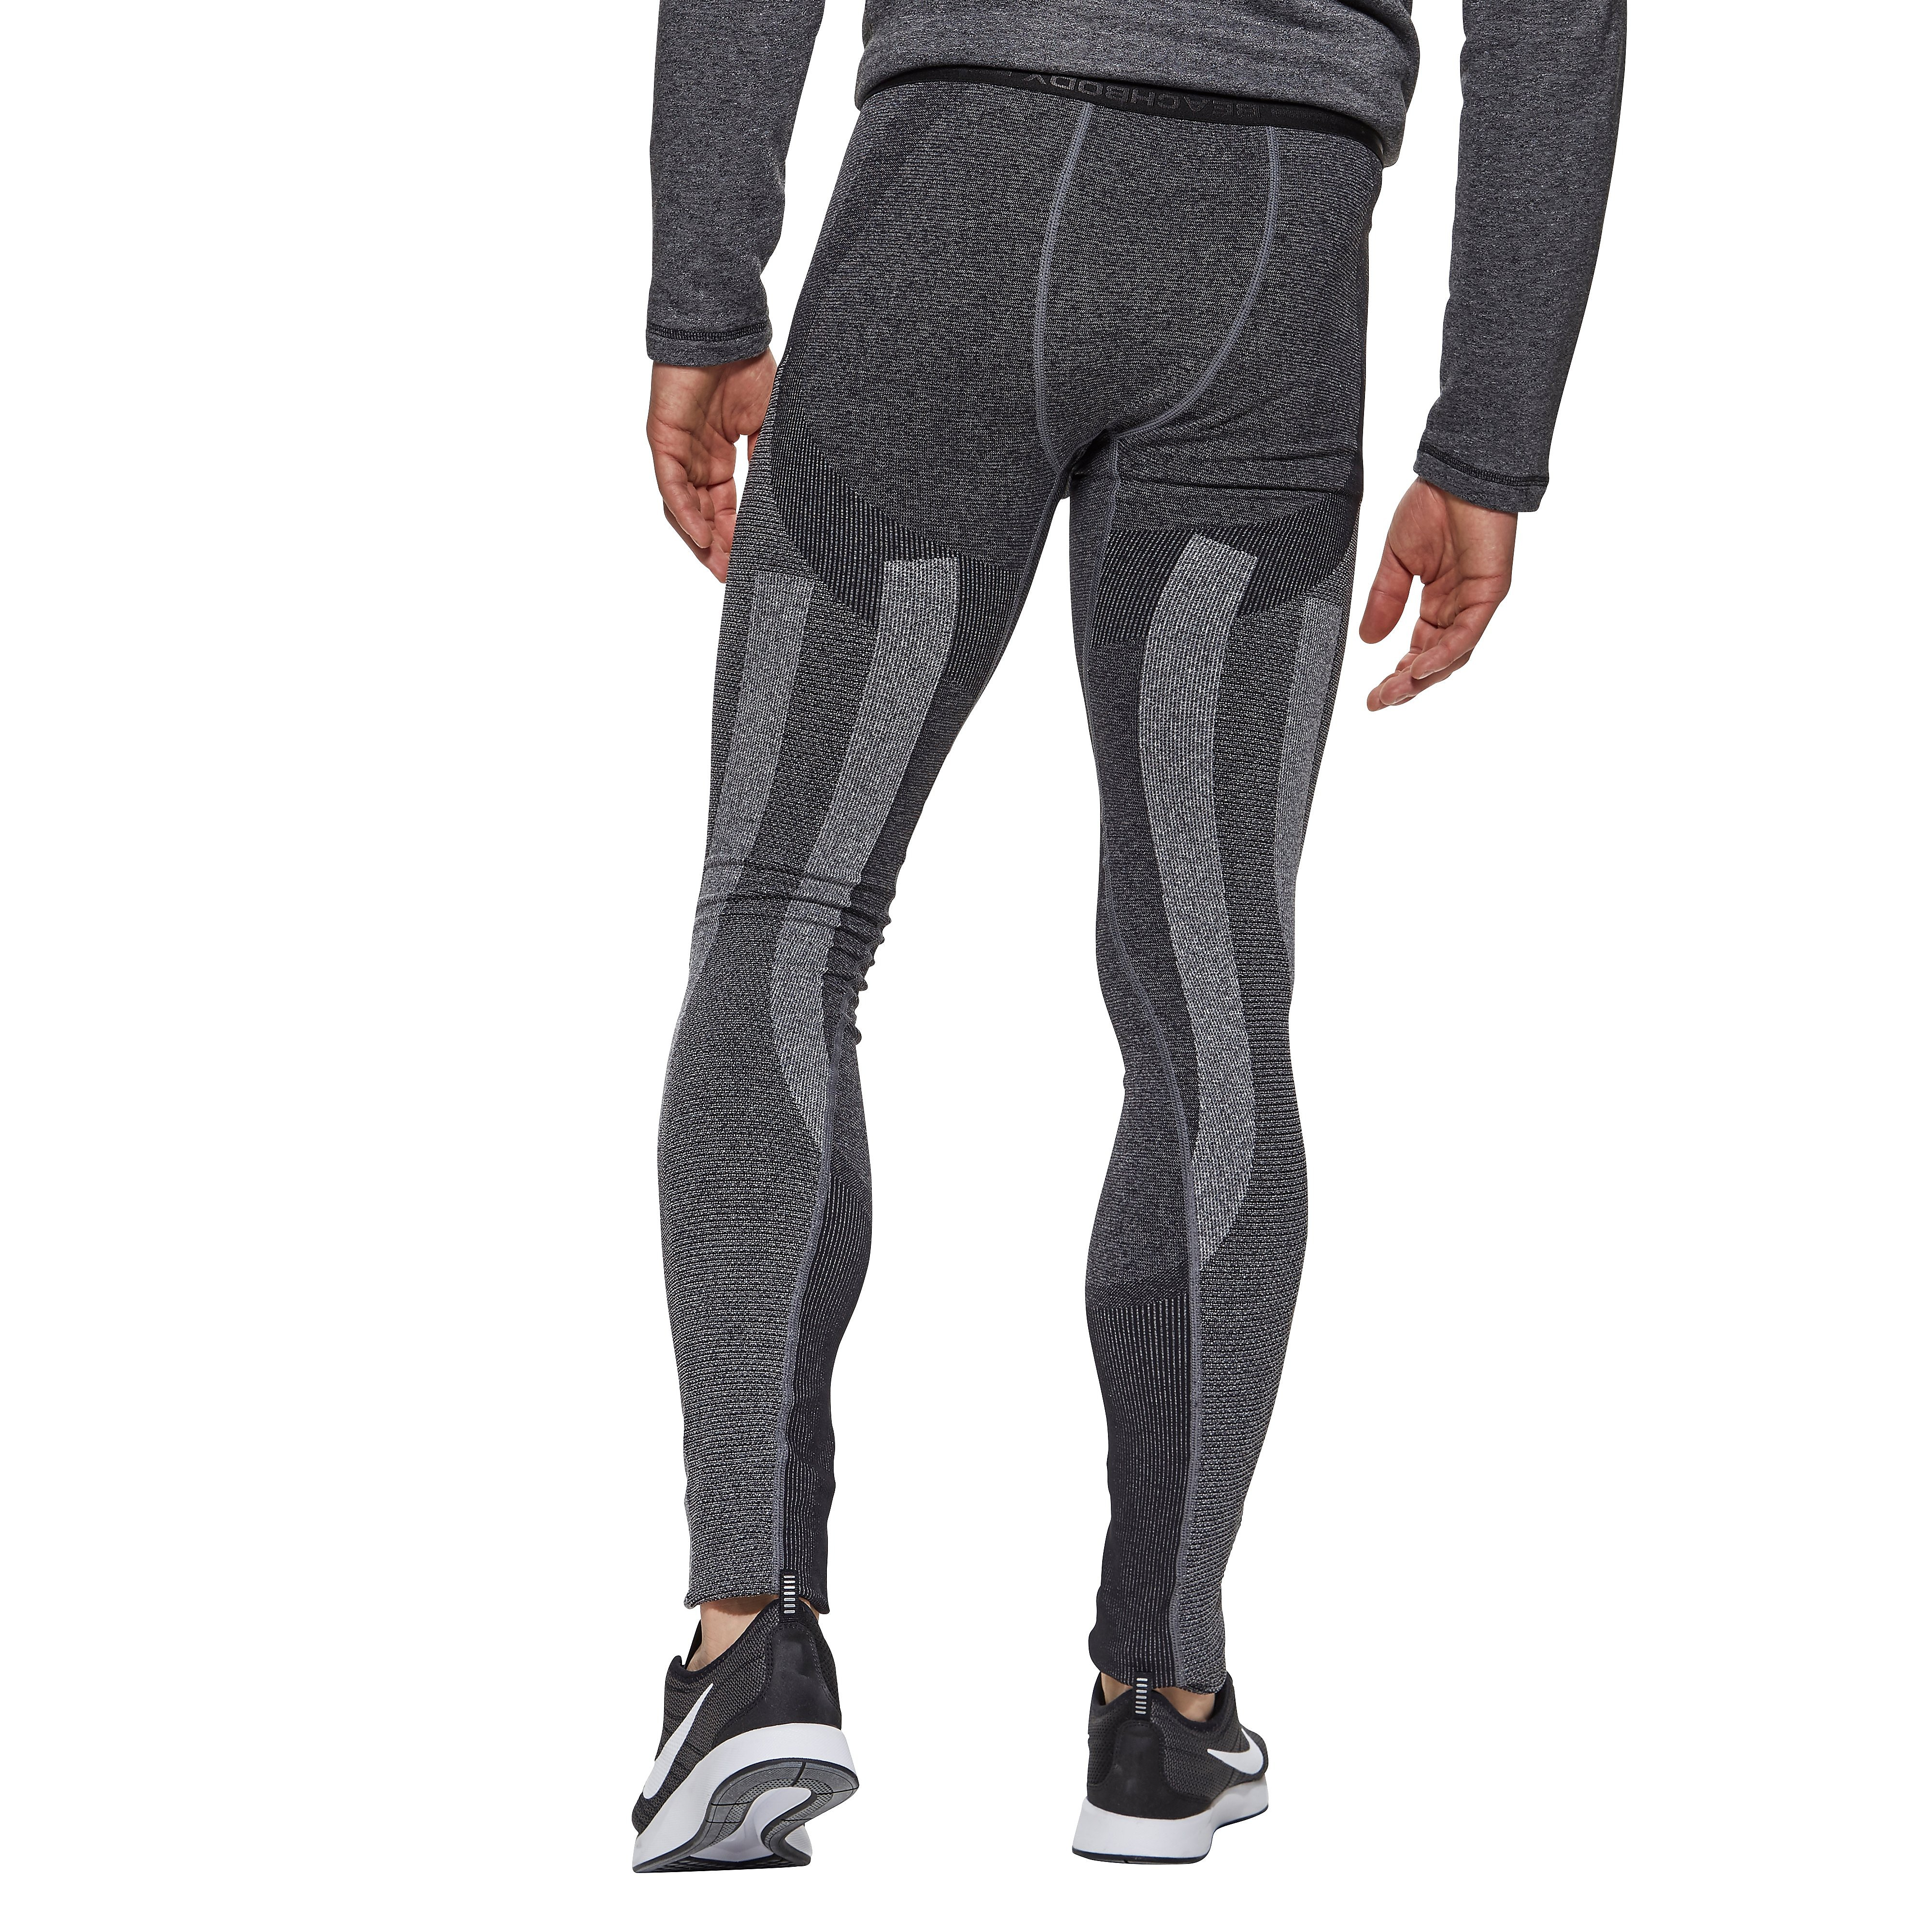 Beachbody Men's Elite Intent Compression Tights